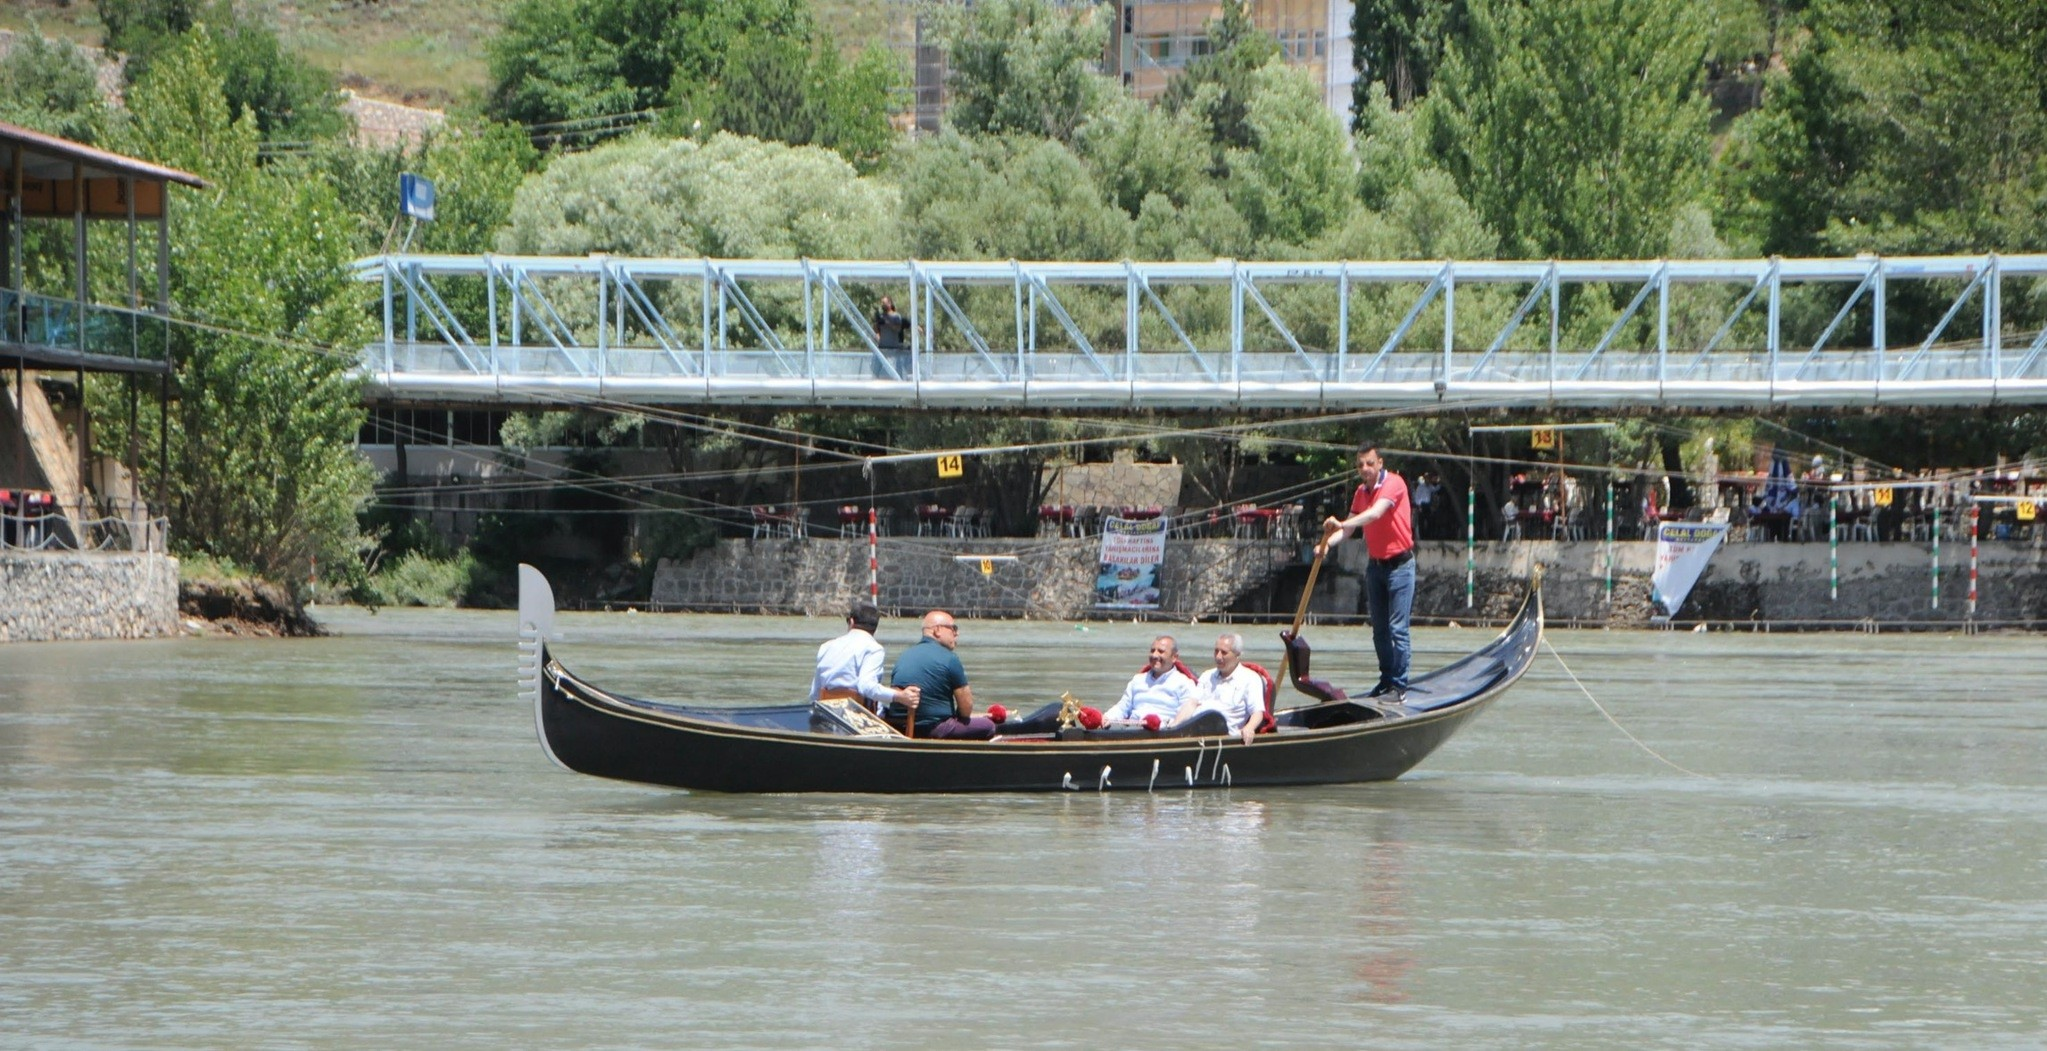 People can enjoy a gondola ride in Tunceli and experience the beauties of the city.